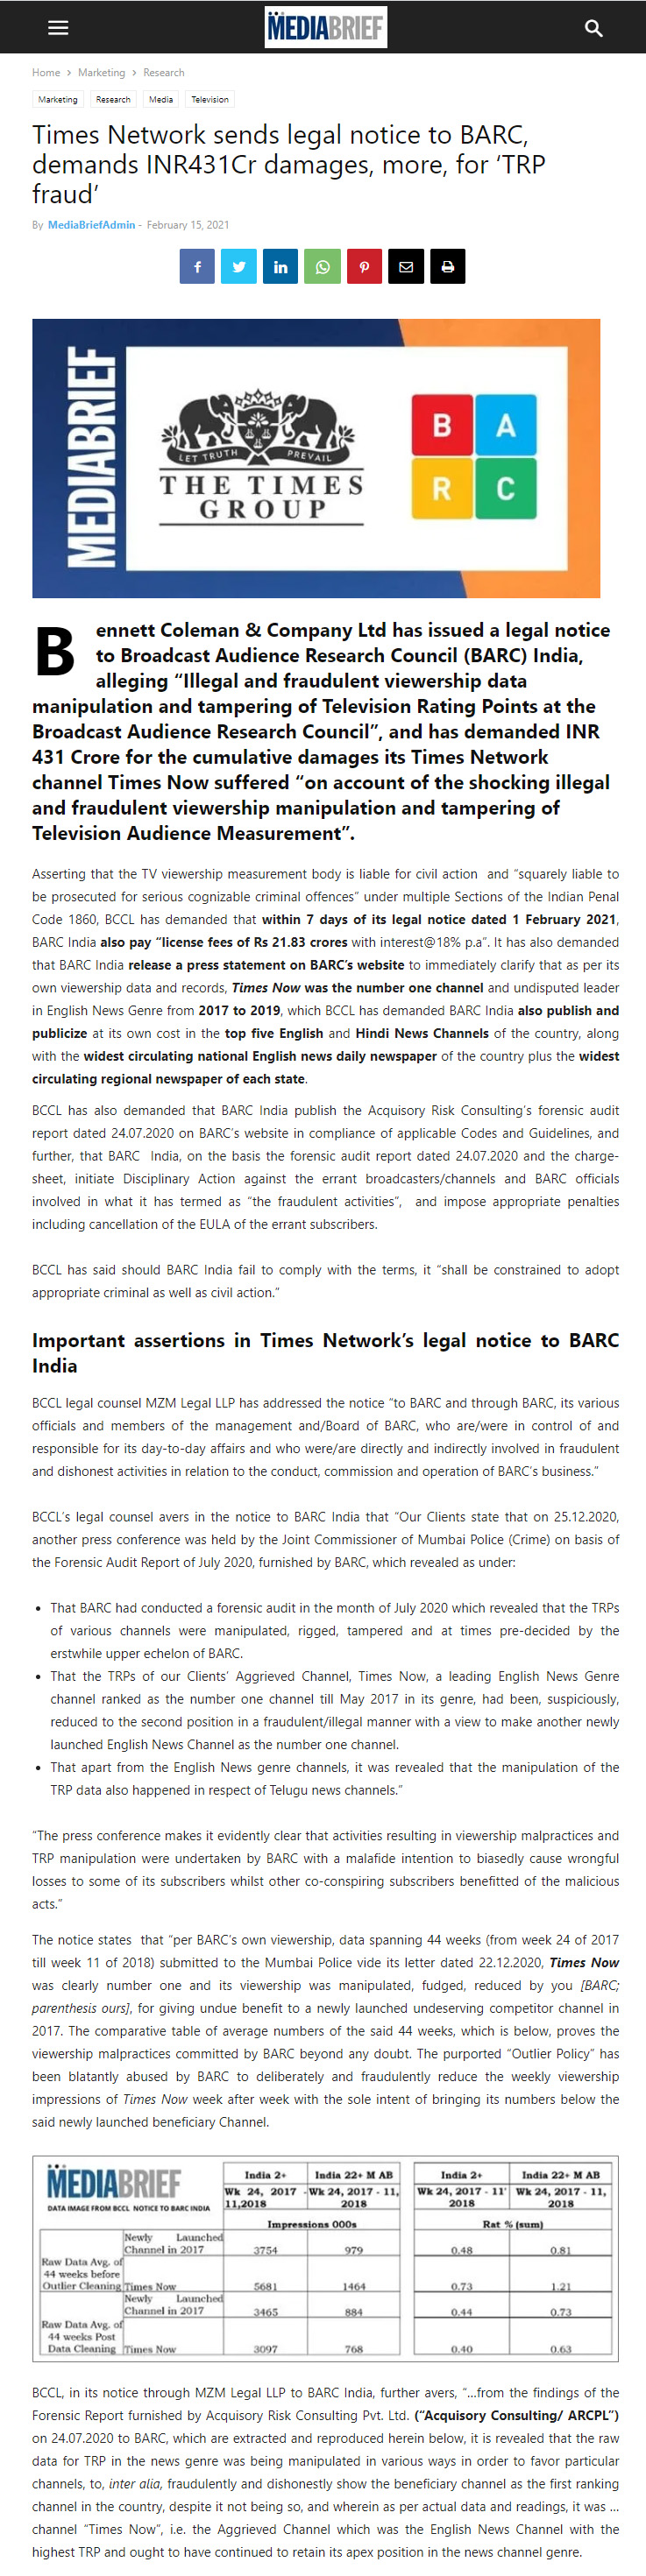 Times Network sends legal notice to BARC, demands INR431Cr damages, more, for 'TRP fraud'